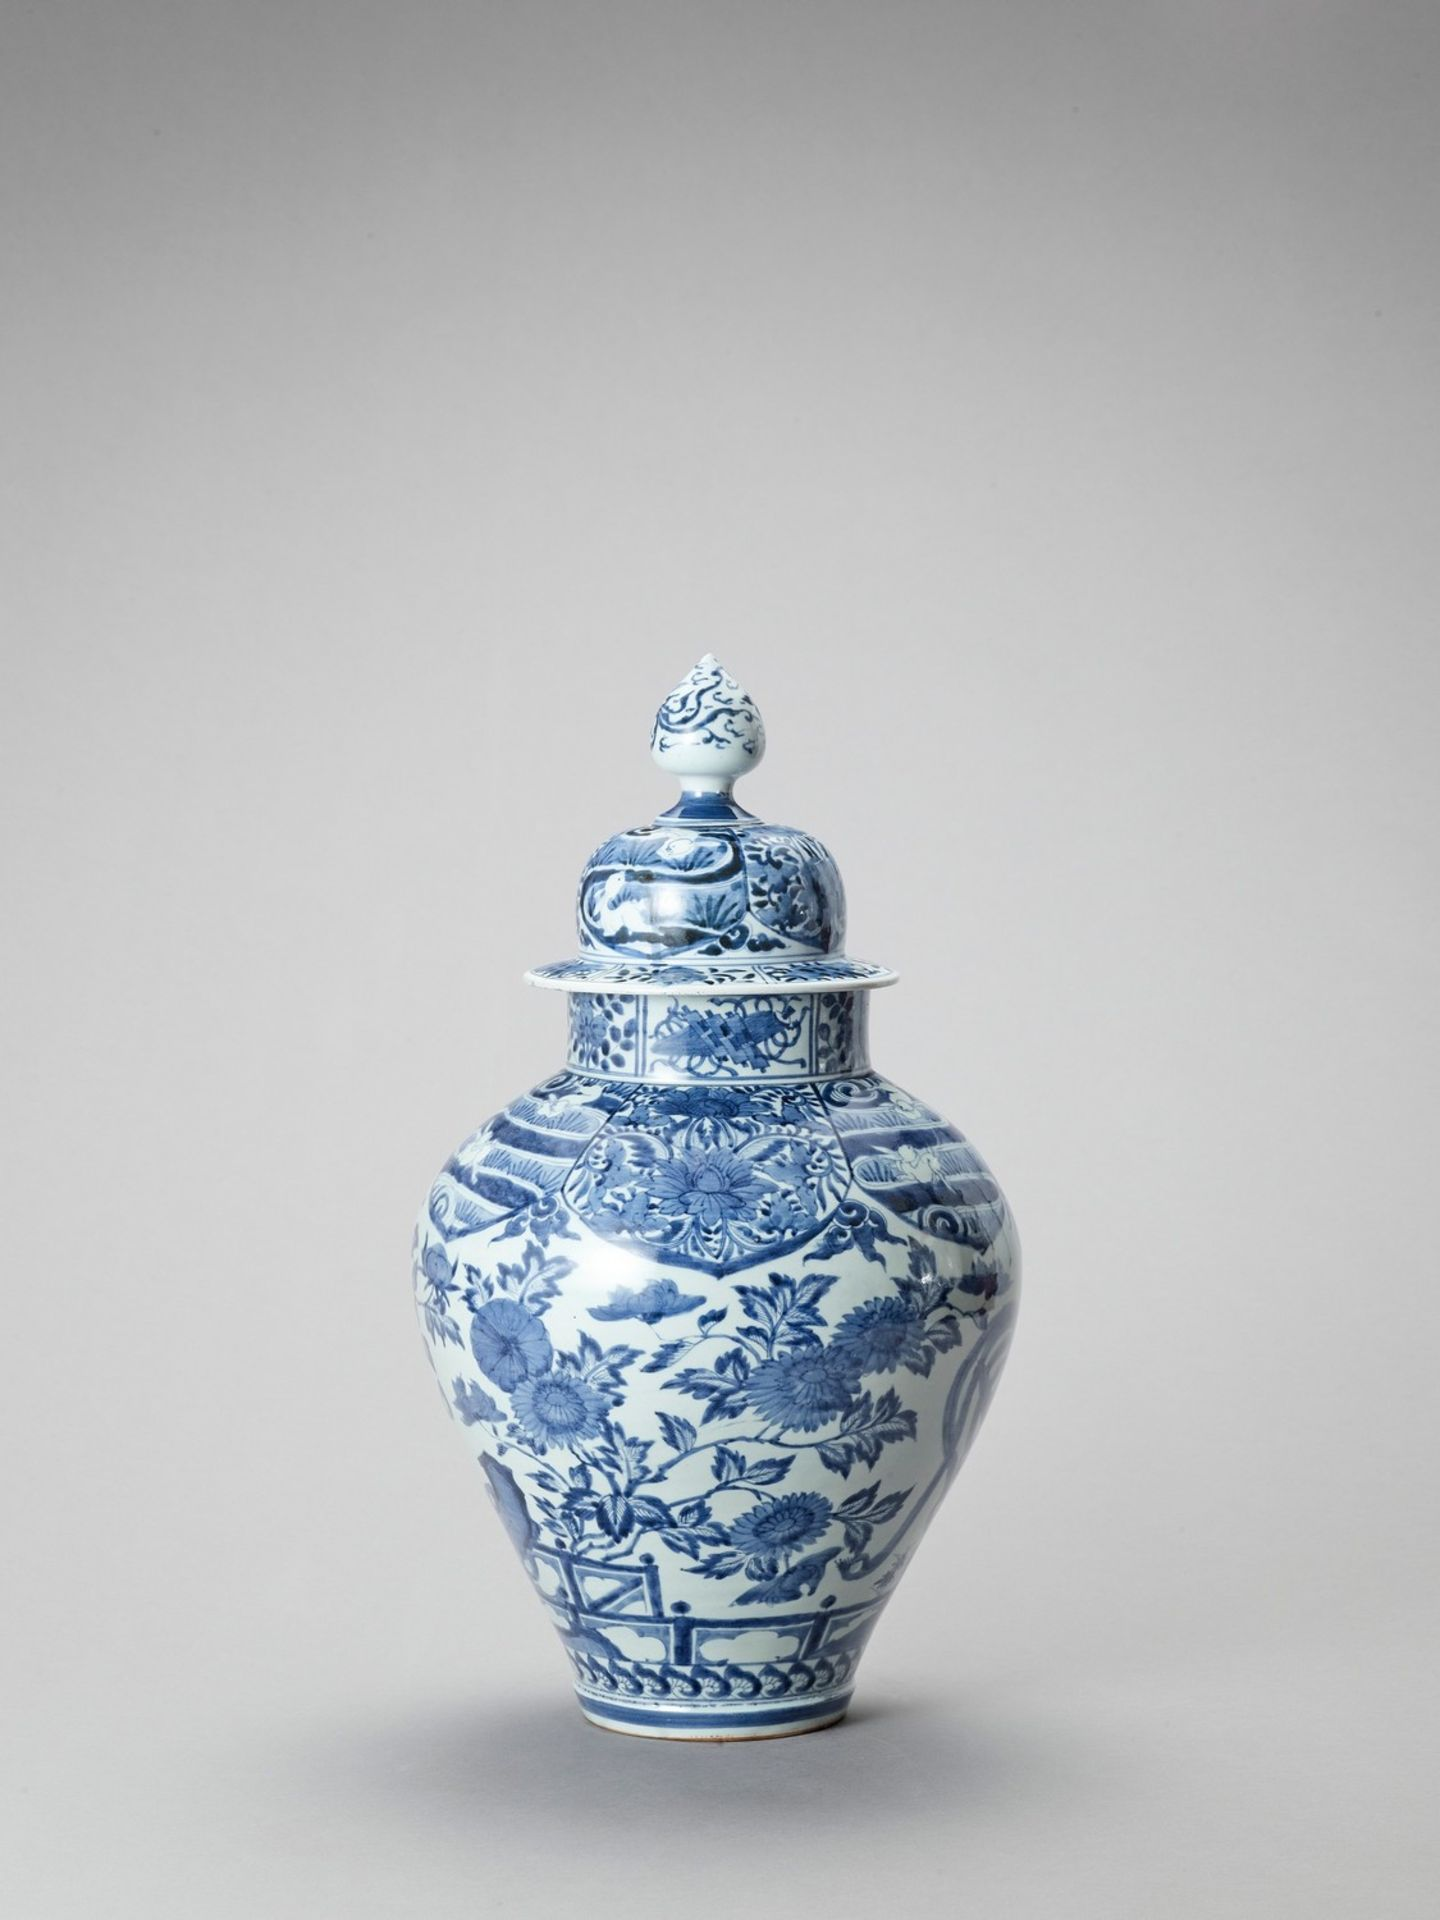 A LARGE BLUE AND WHITE PORCELAIN JAR AND COVER - Image 4 of 6